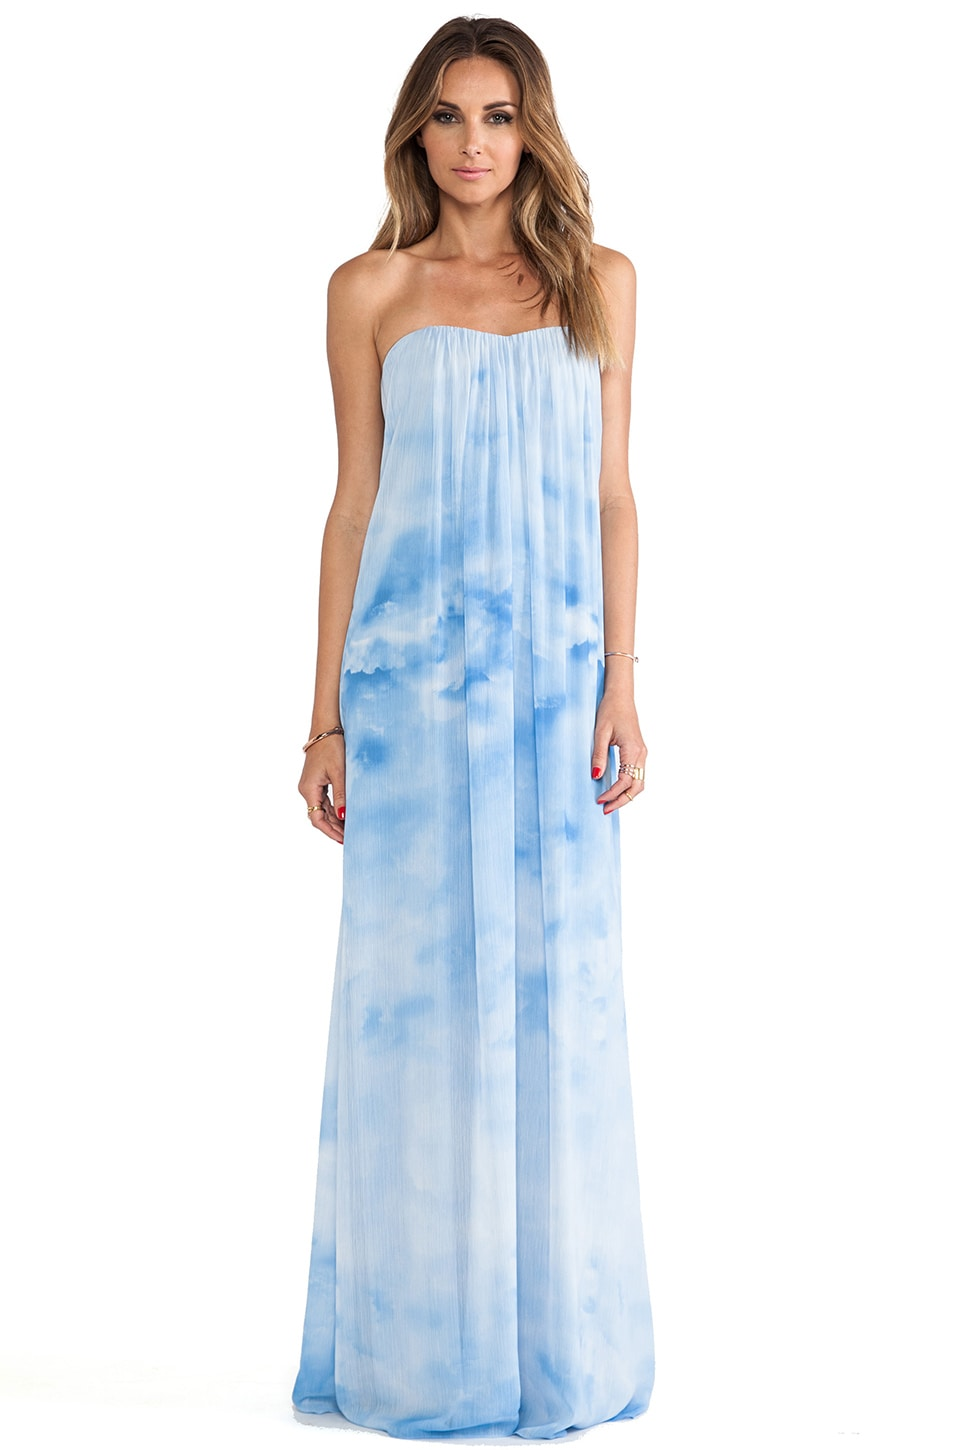 Alice   Olivia Maisie Sweetheart Maxi Dress in Ombre Cloud | REVOLVE